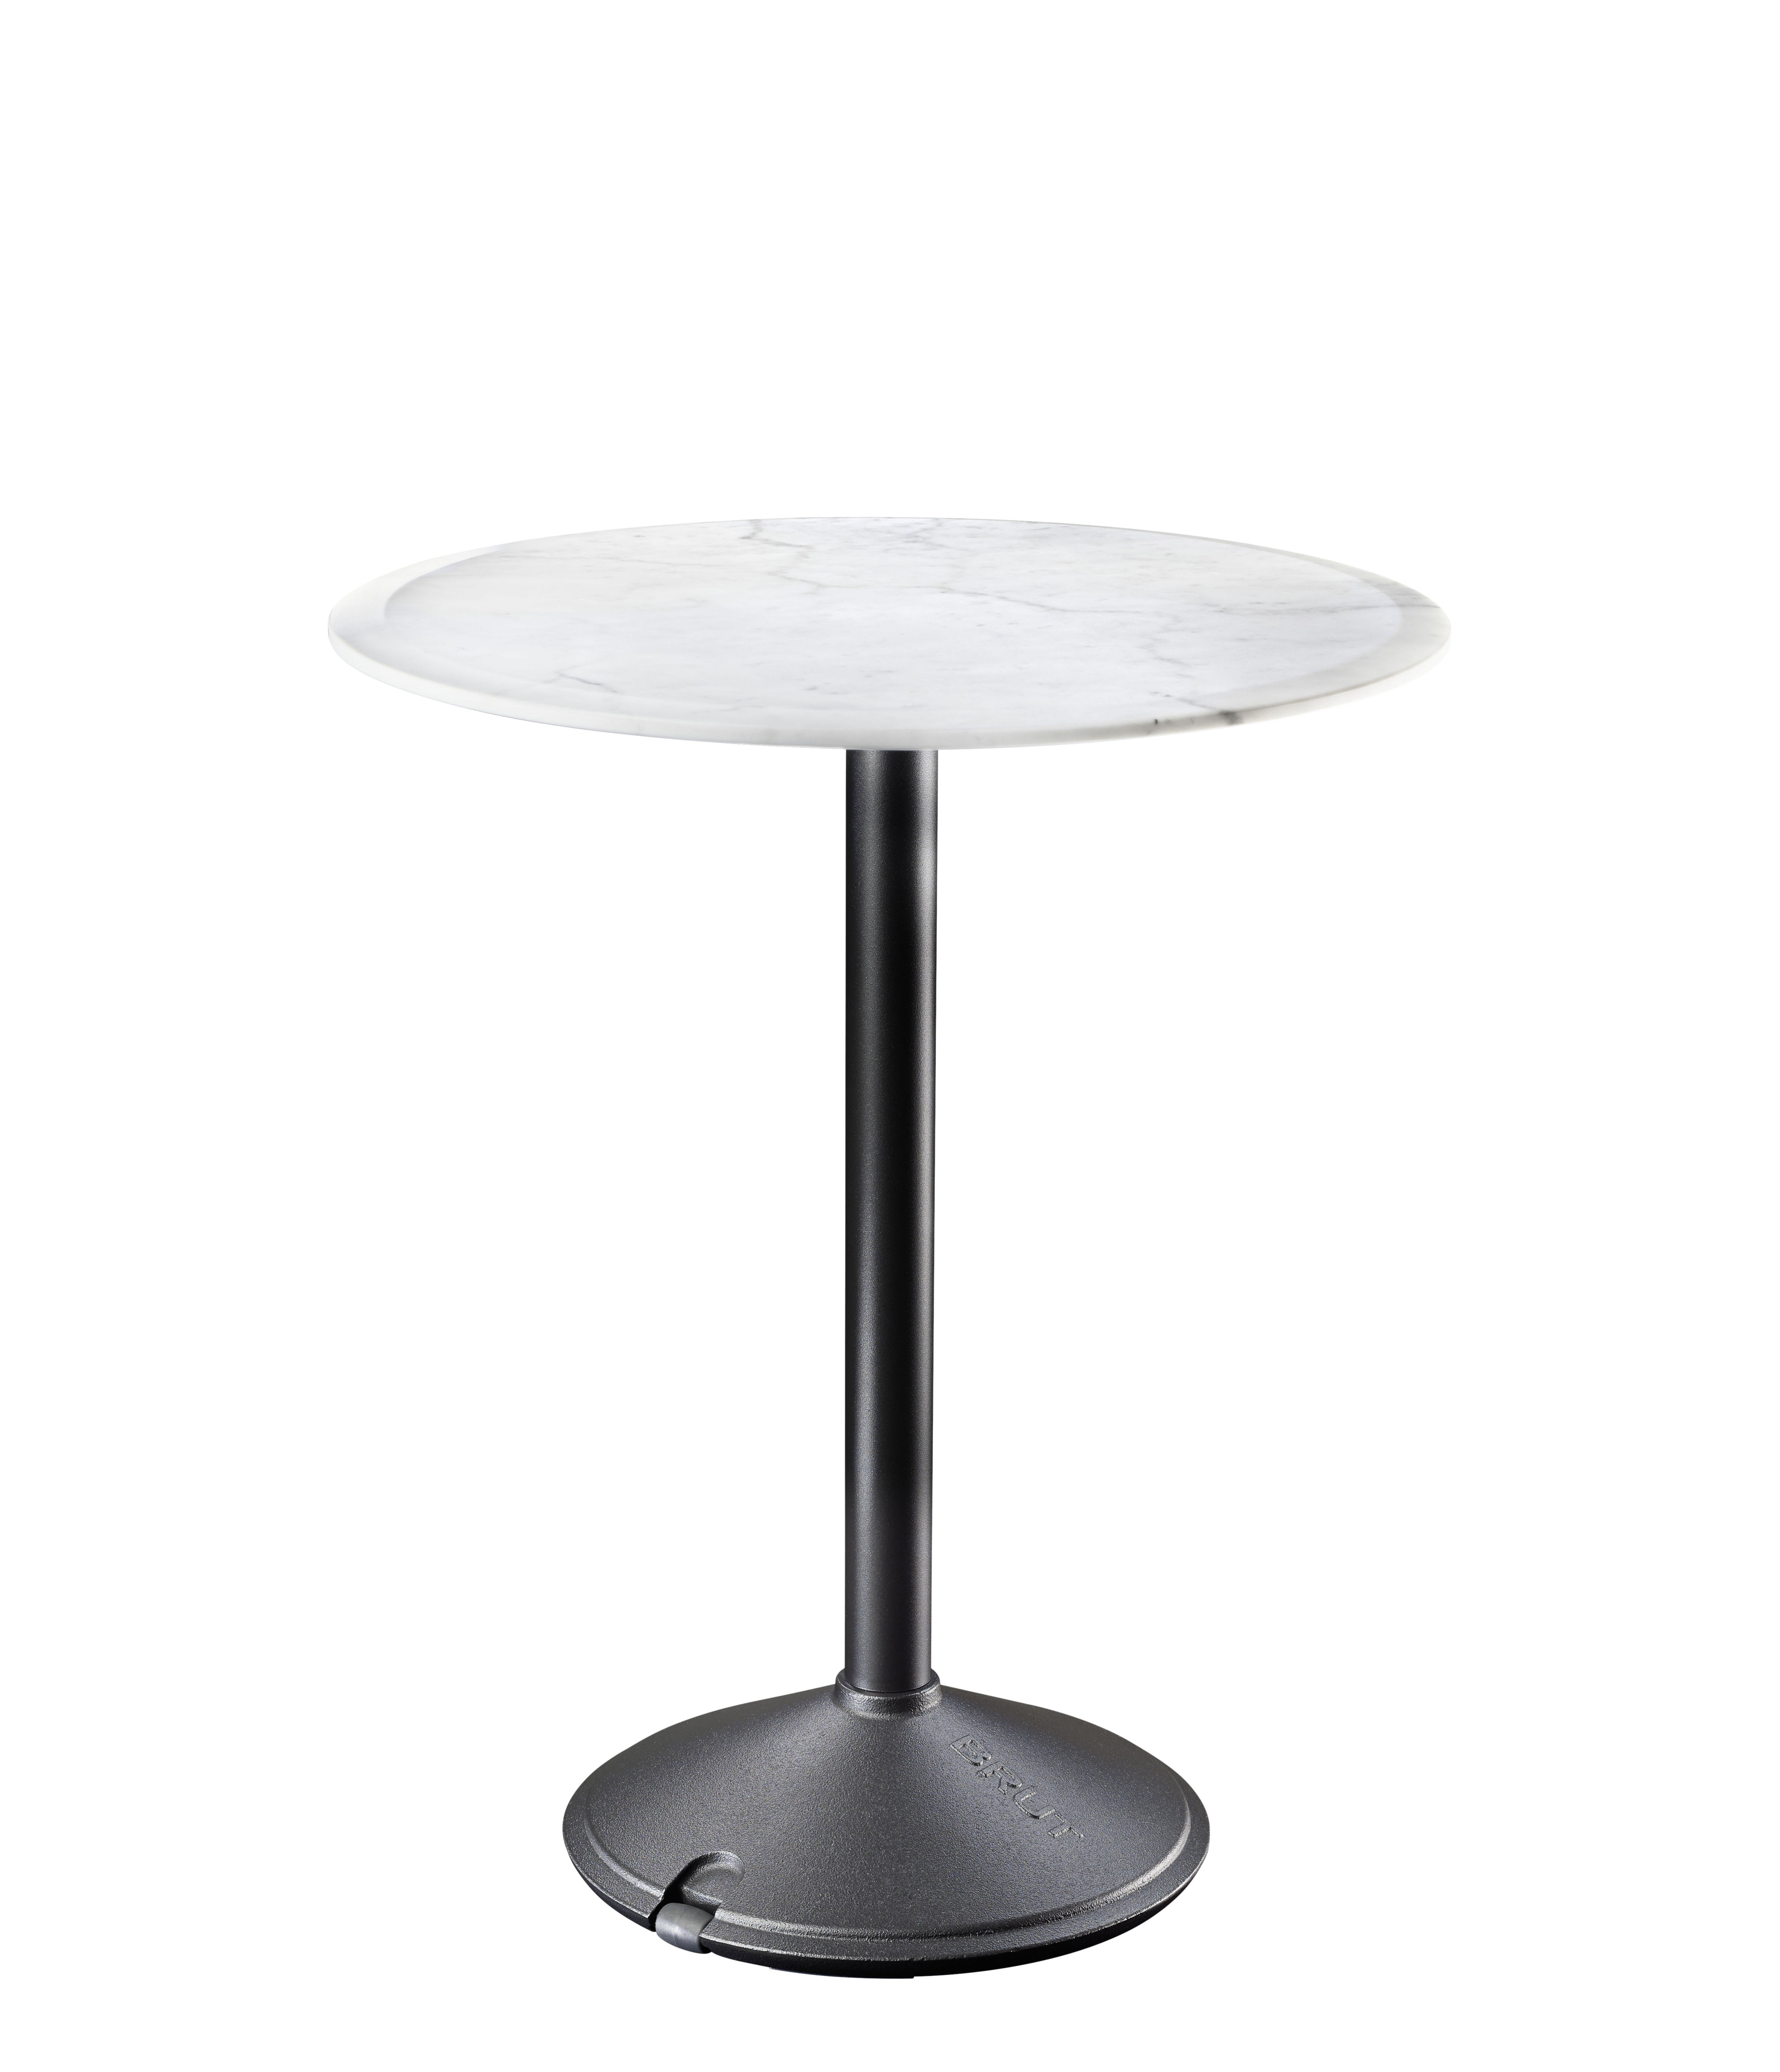 Outdoor - Garden Tables - Brut Round table - / Marble - Outdoor - Ø 60 cm by Magis - White marble / Black base - Cast iron, Marble